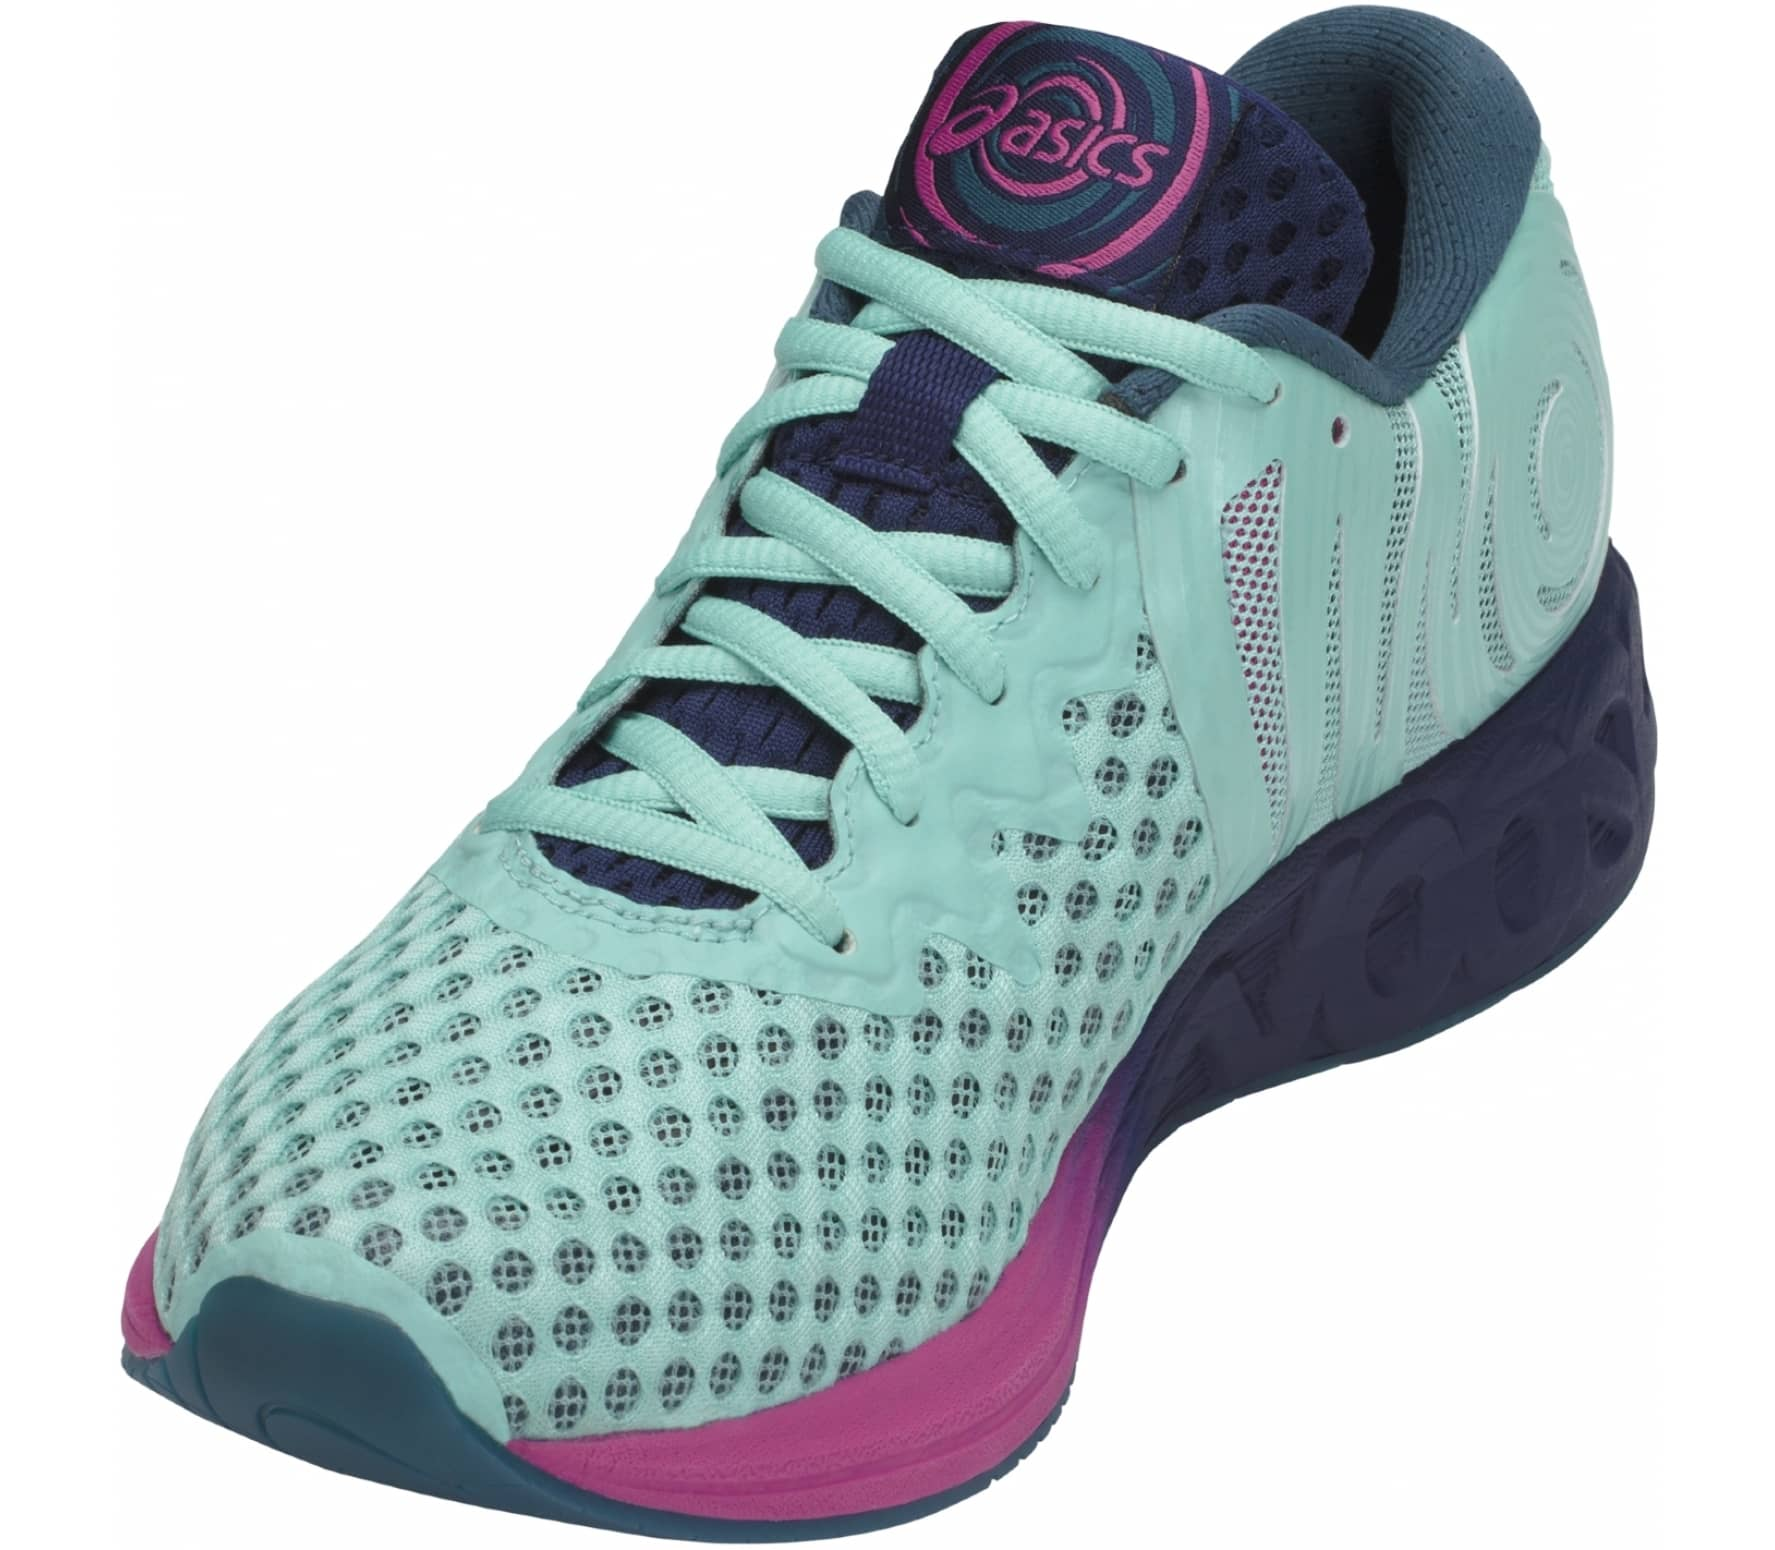 b599ad3ad816 ASICS - Noosa FF 2 women s running shoes (turquoise) - buy it at the ...